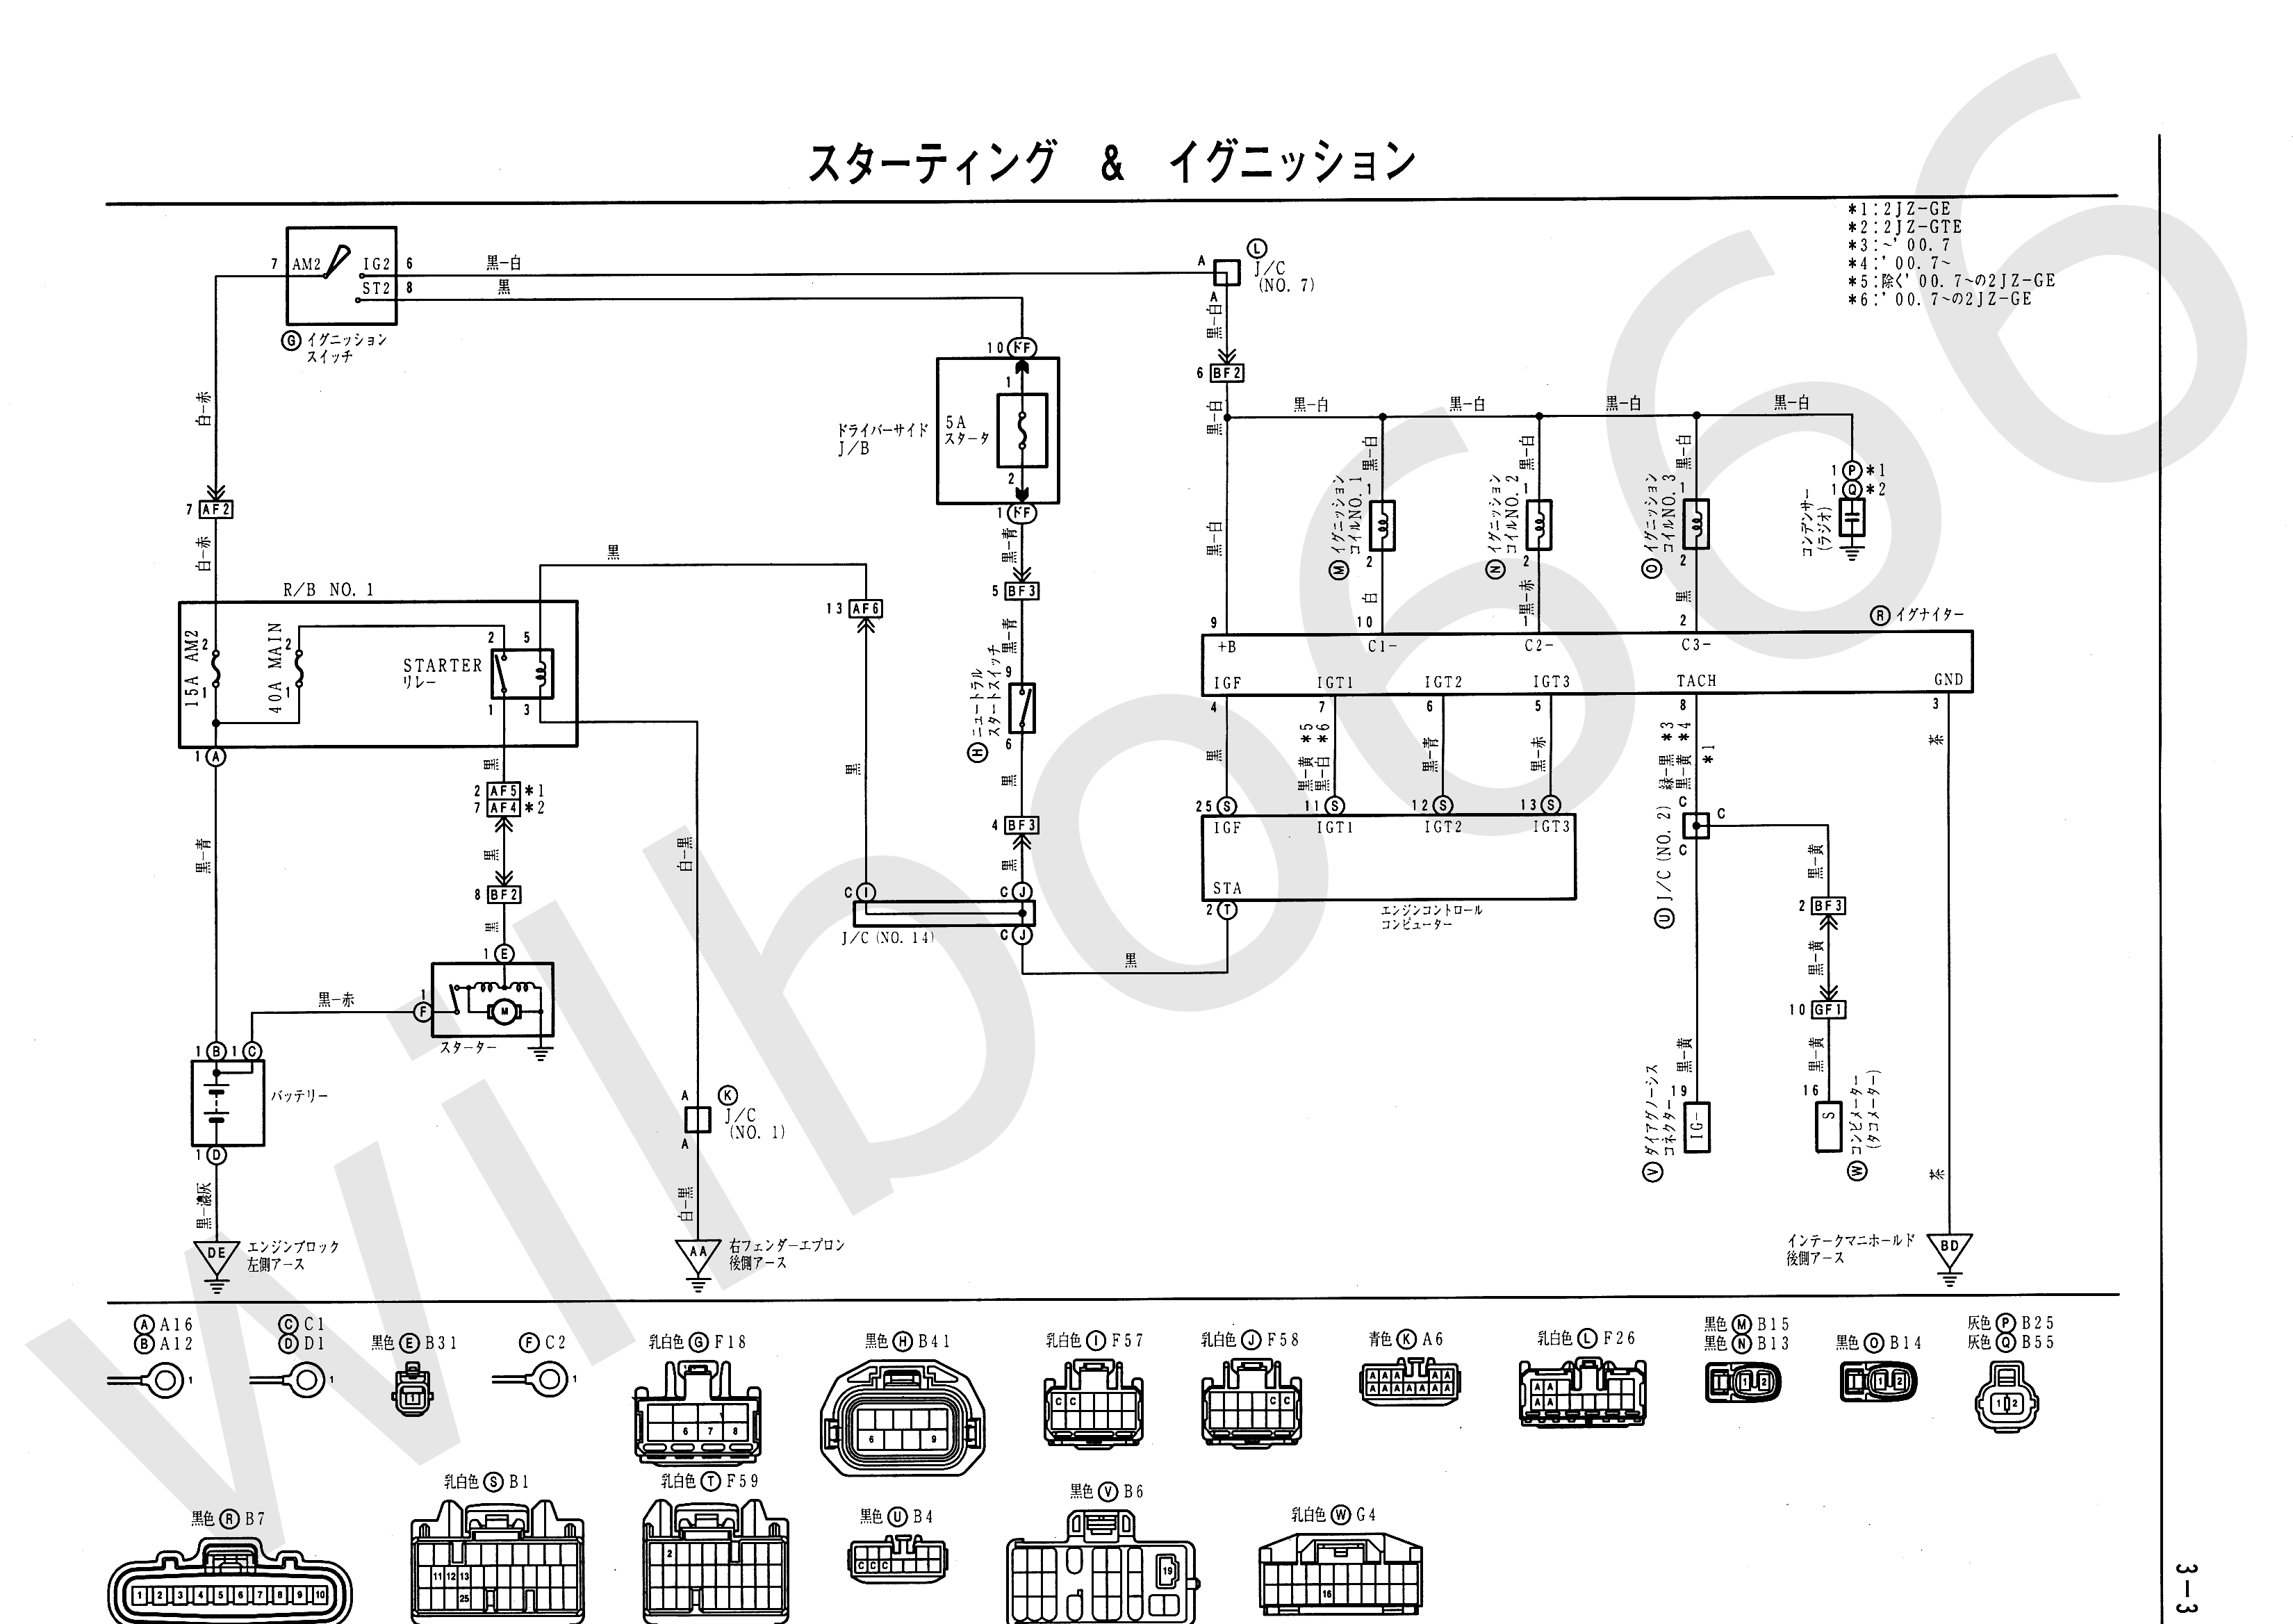 JZS161 Electrical Wiring Diagram 6748505 3 3 wilbo666 2jz gte vvti jzs161 aristo engine wiring  at aneh.co